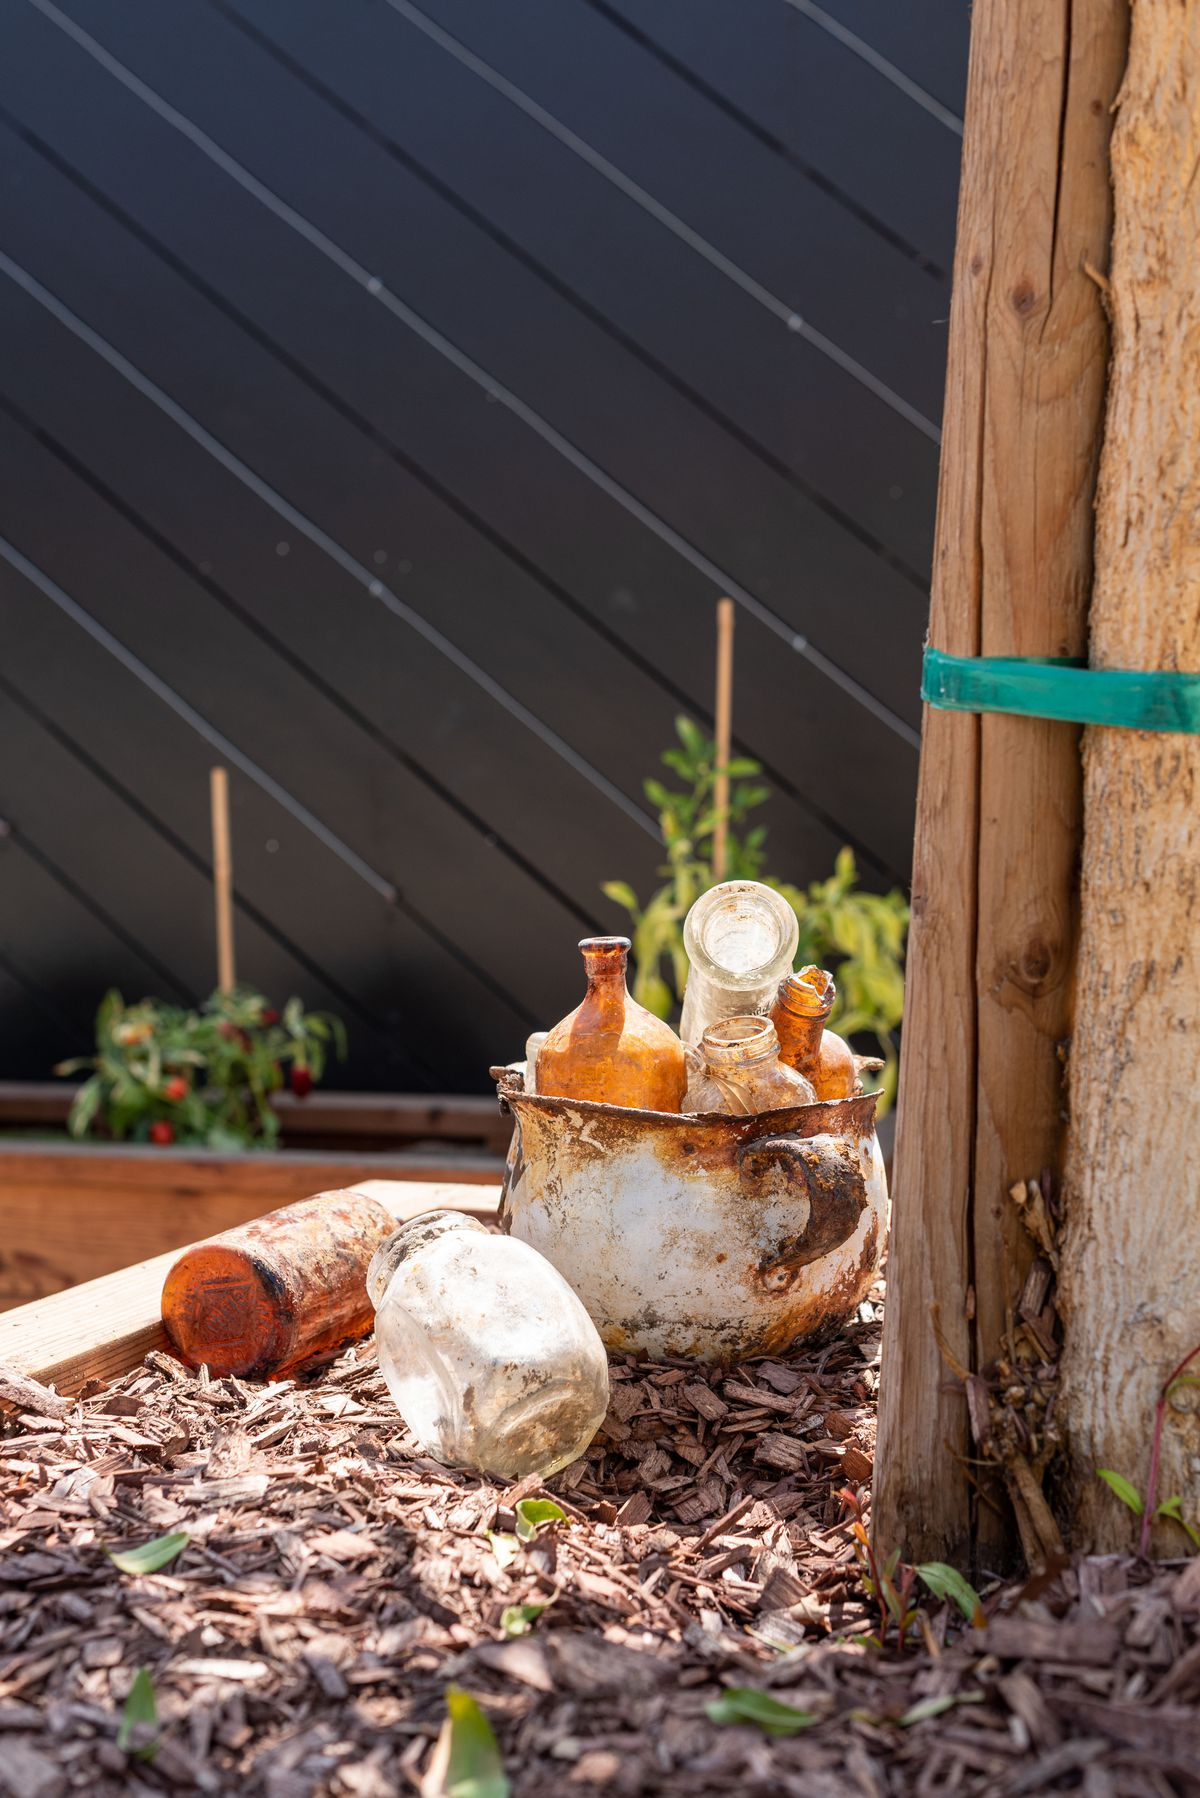 Rusted metal pot and old glass inside of a new garden.